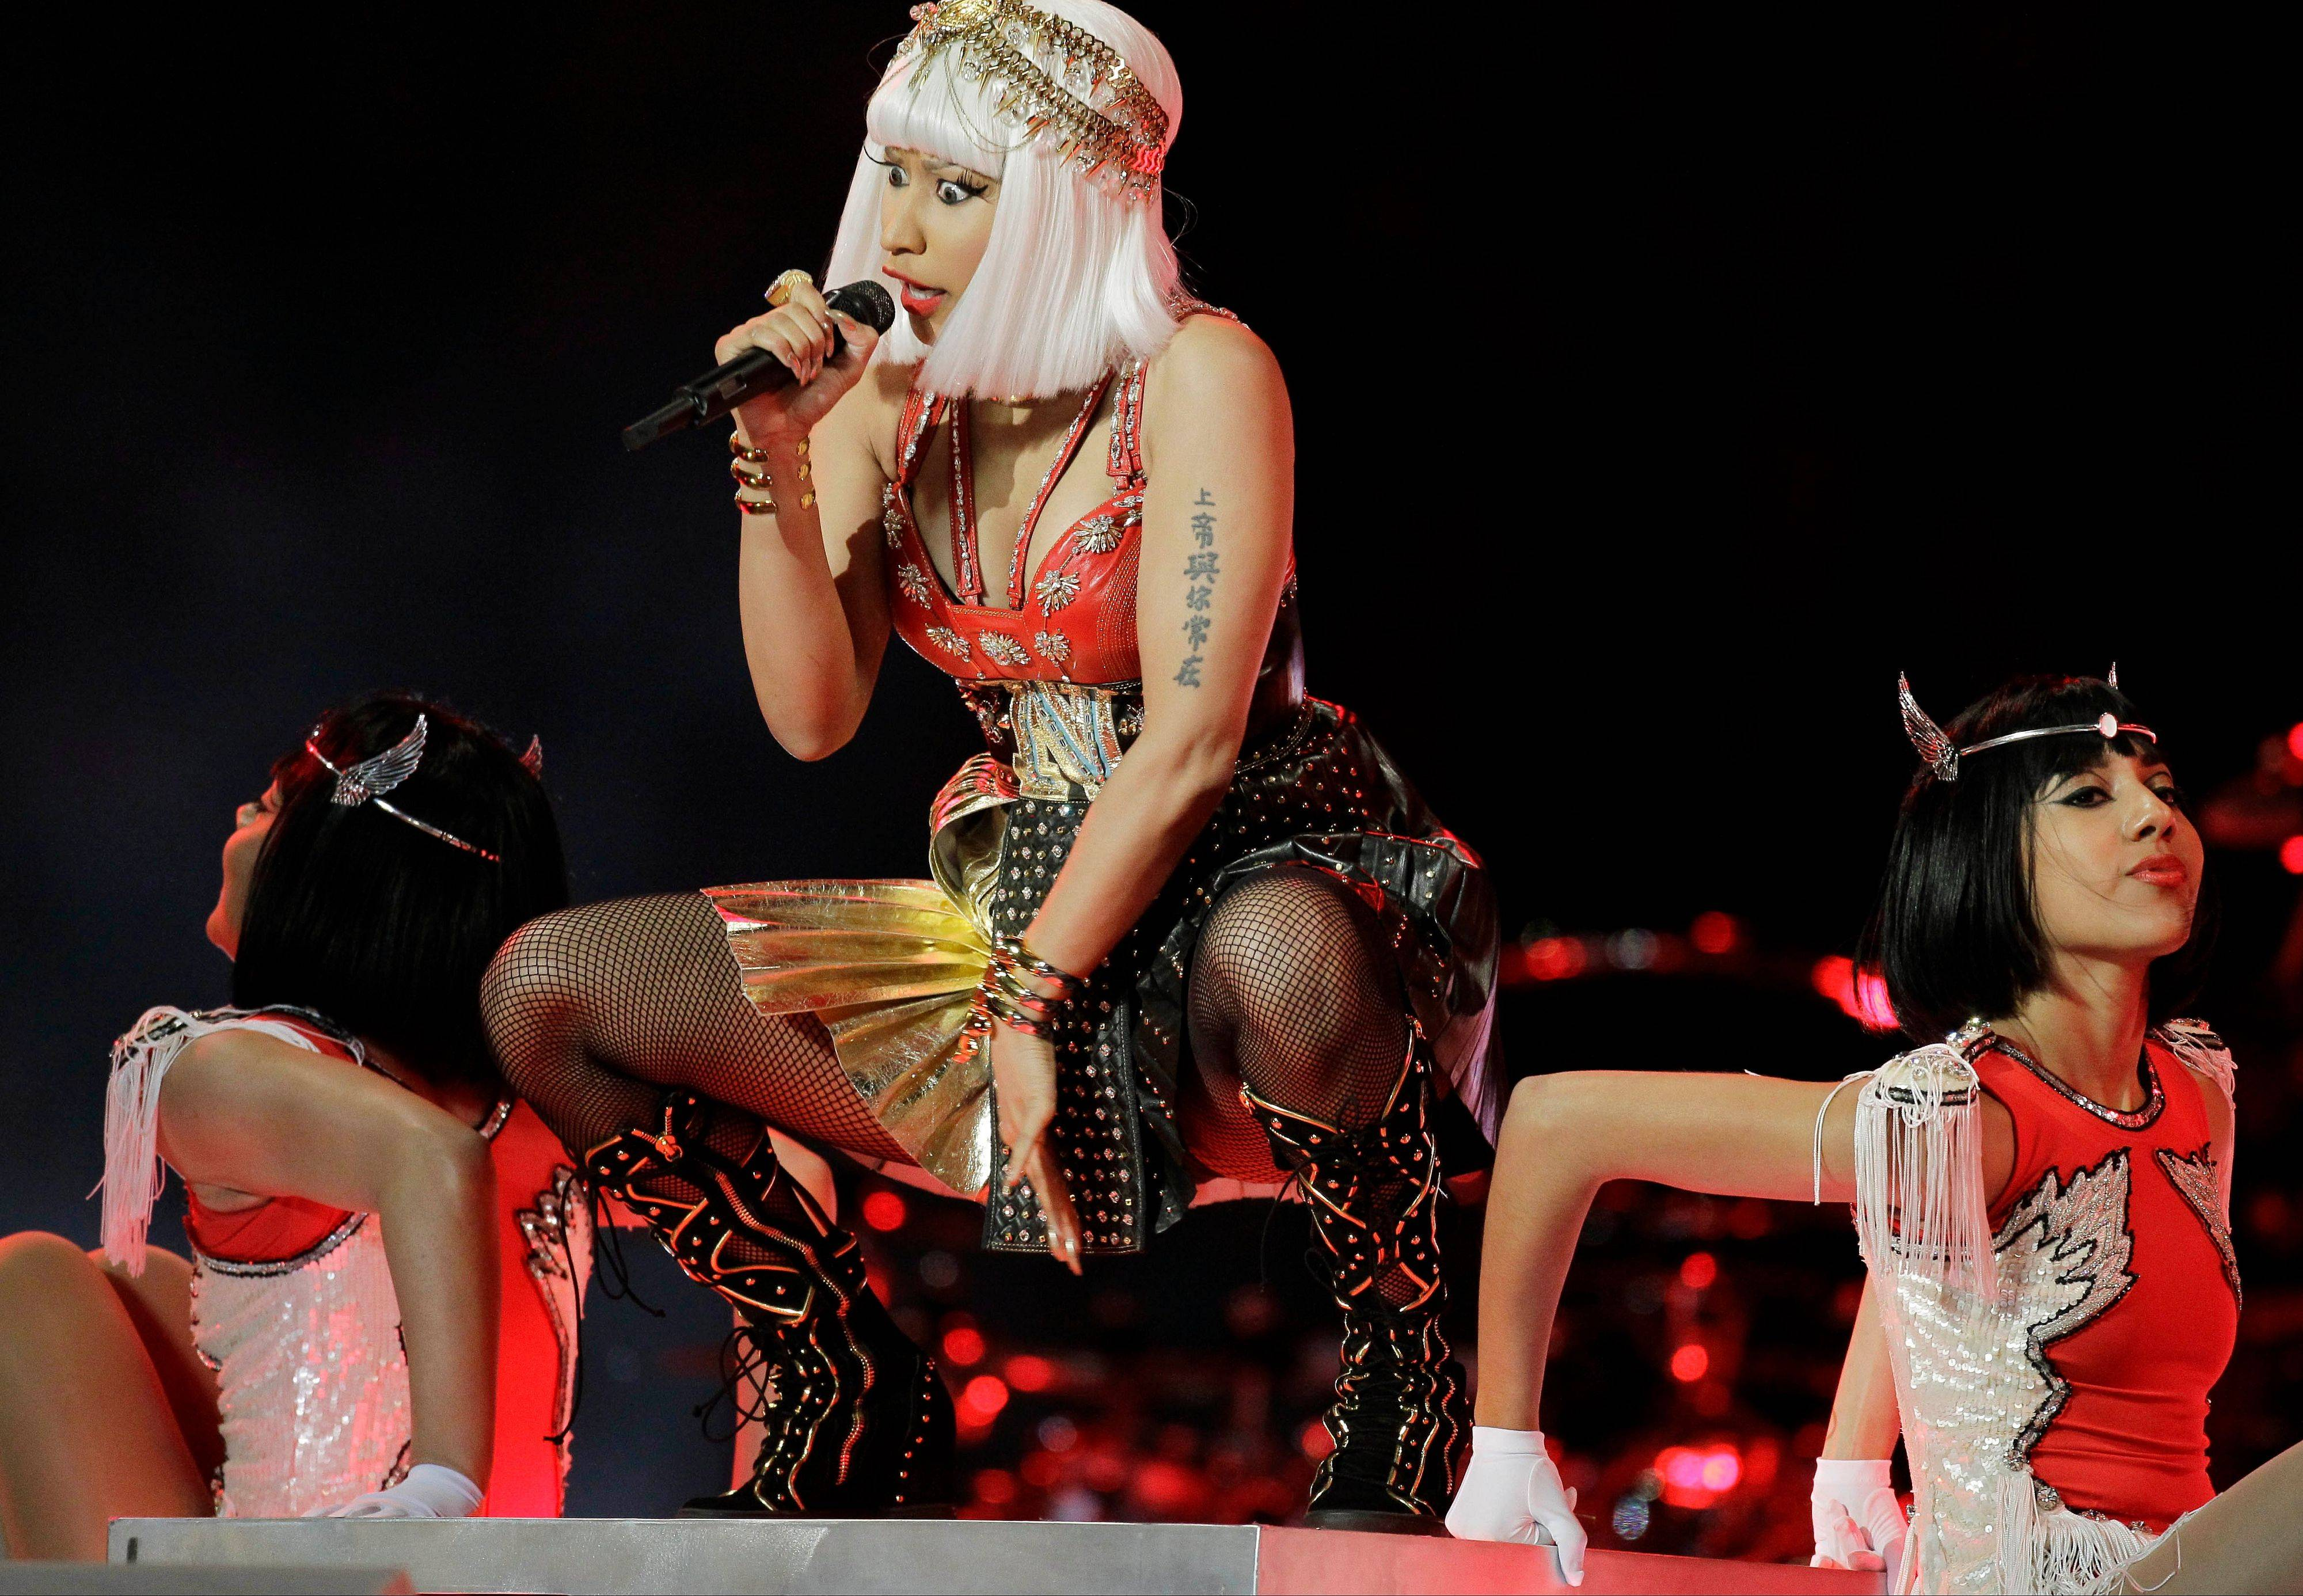 Nicki Minaj performs during halftime of the Super Bowl XLVI football game.